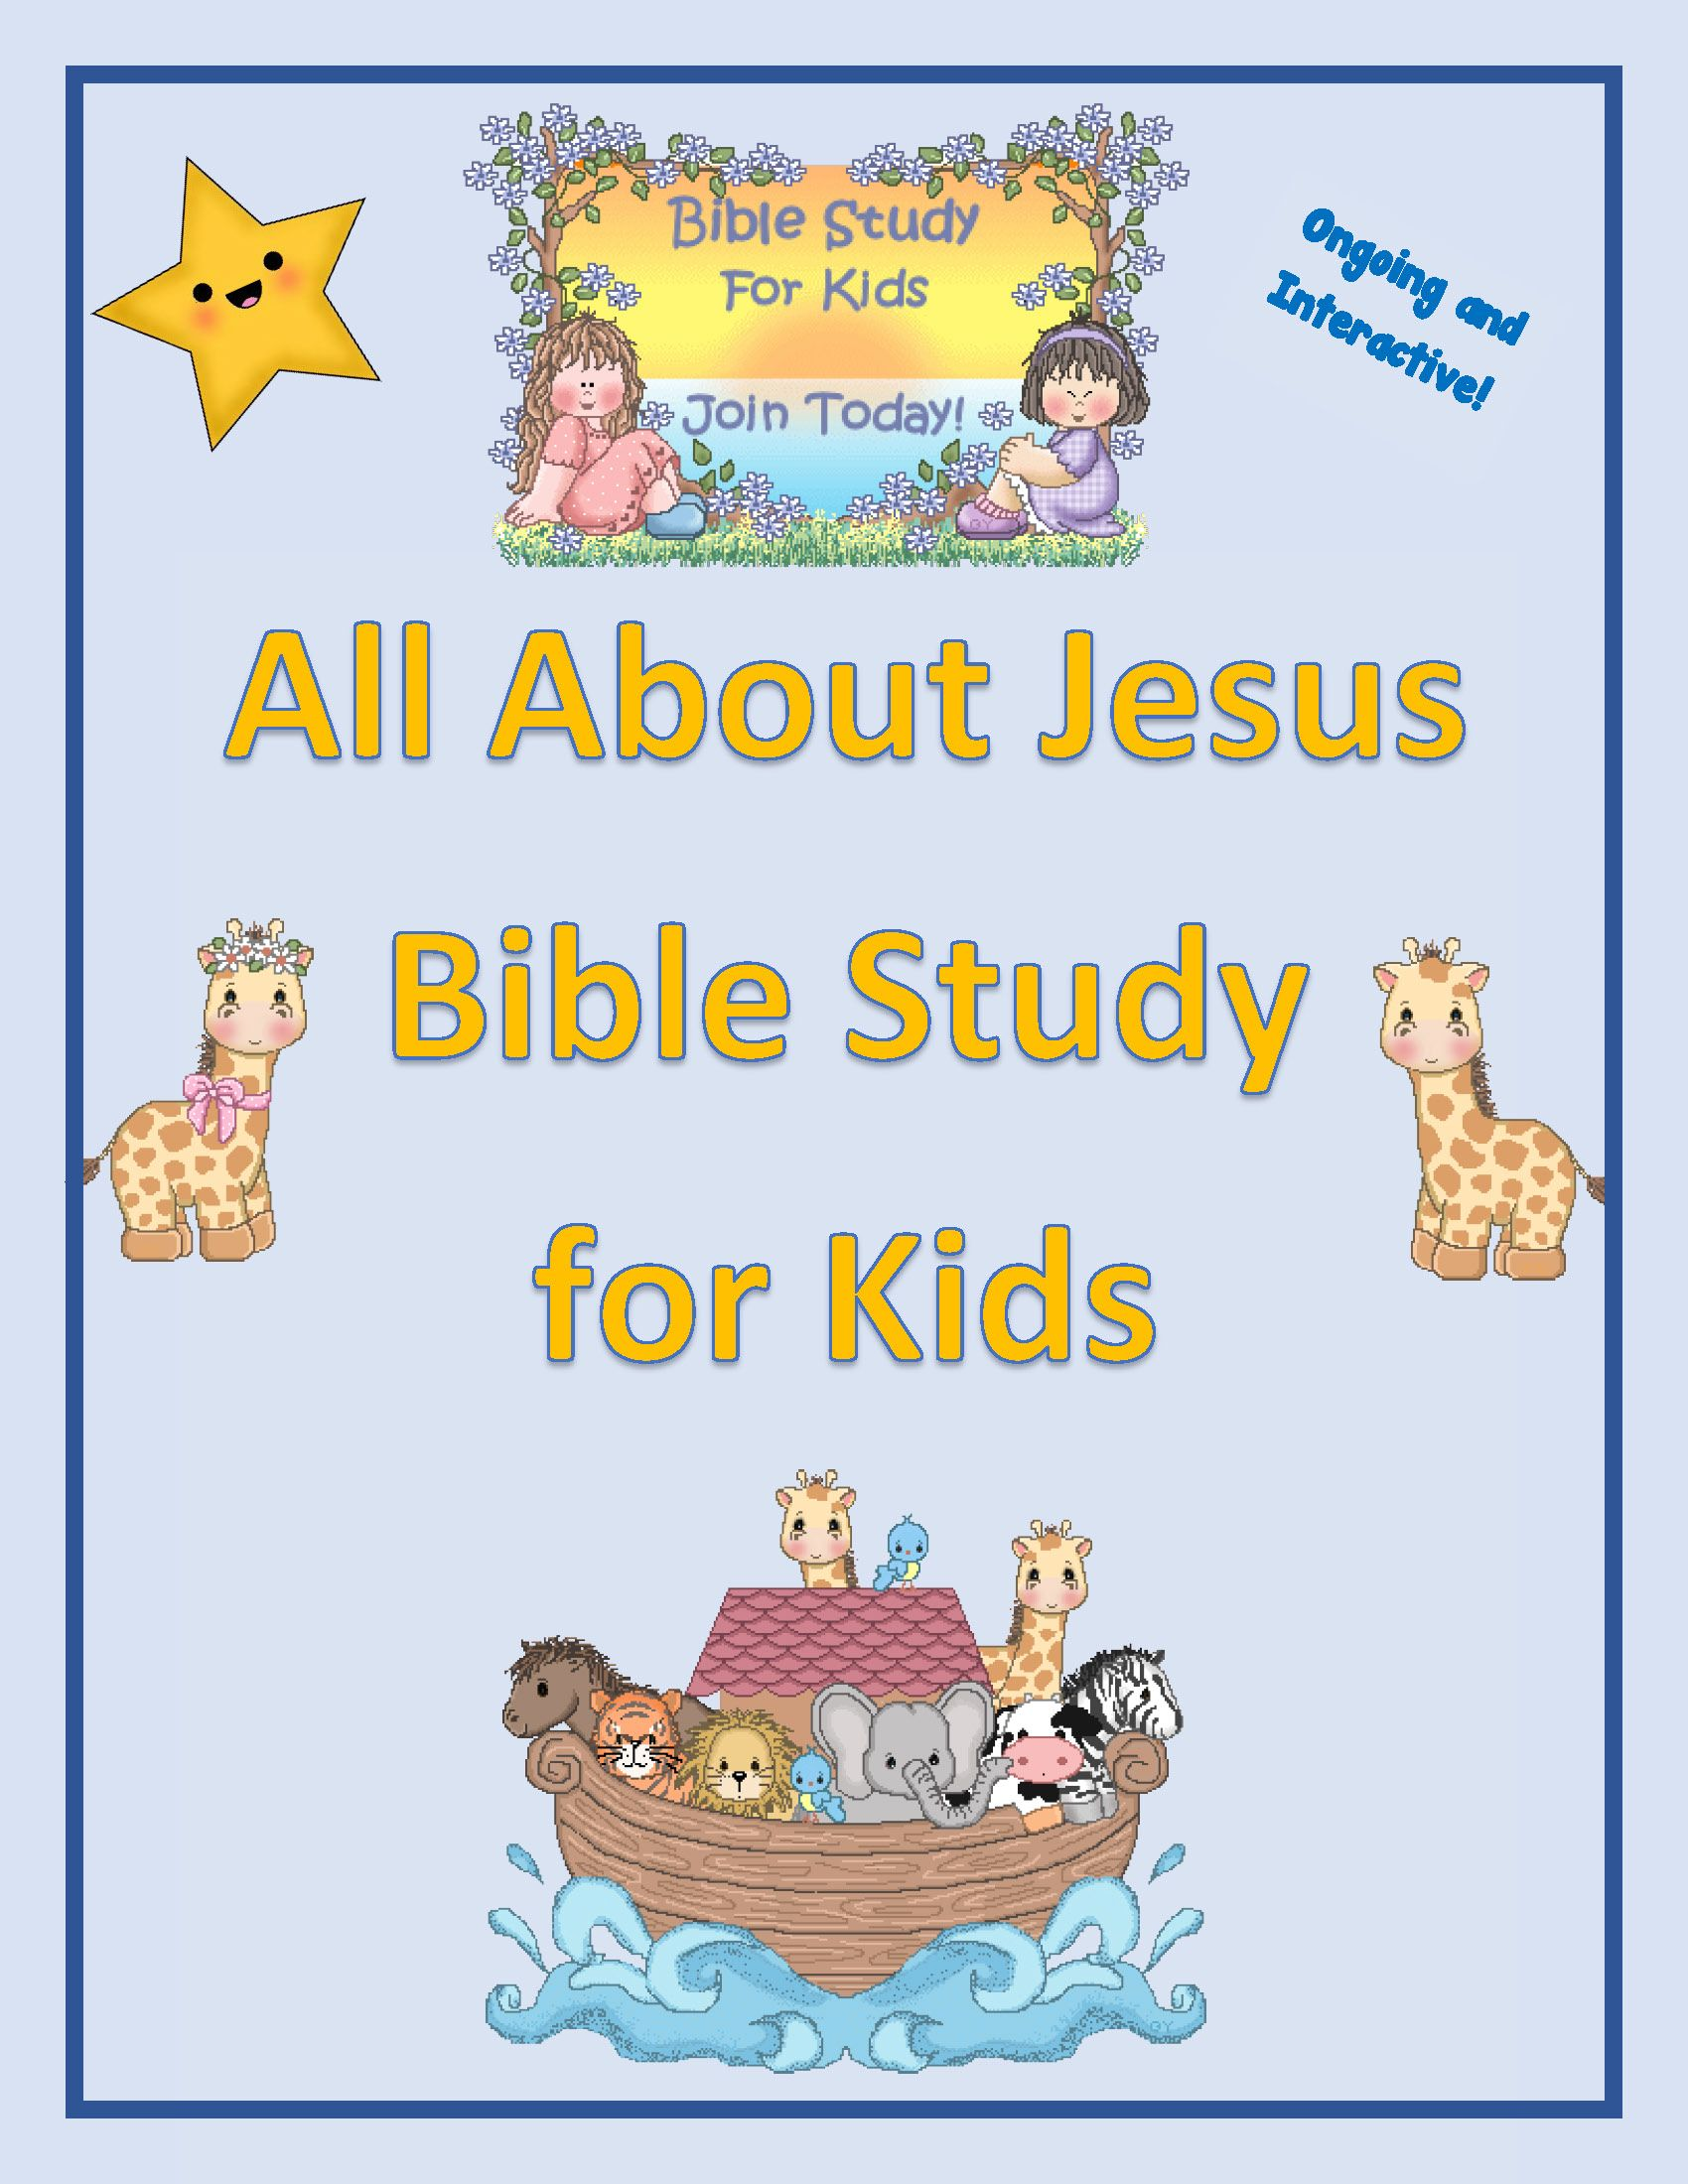 All About Jesus